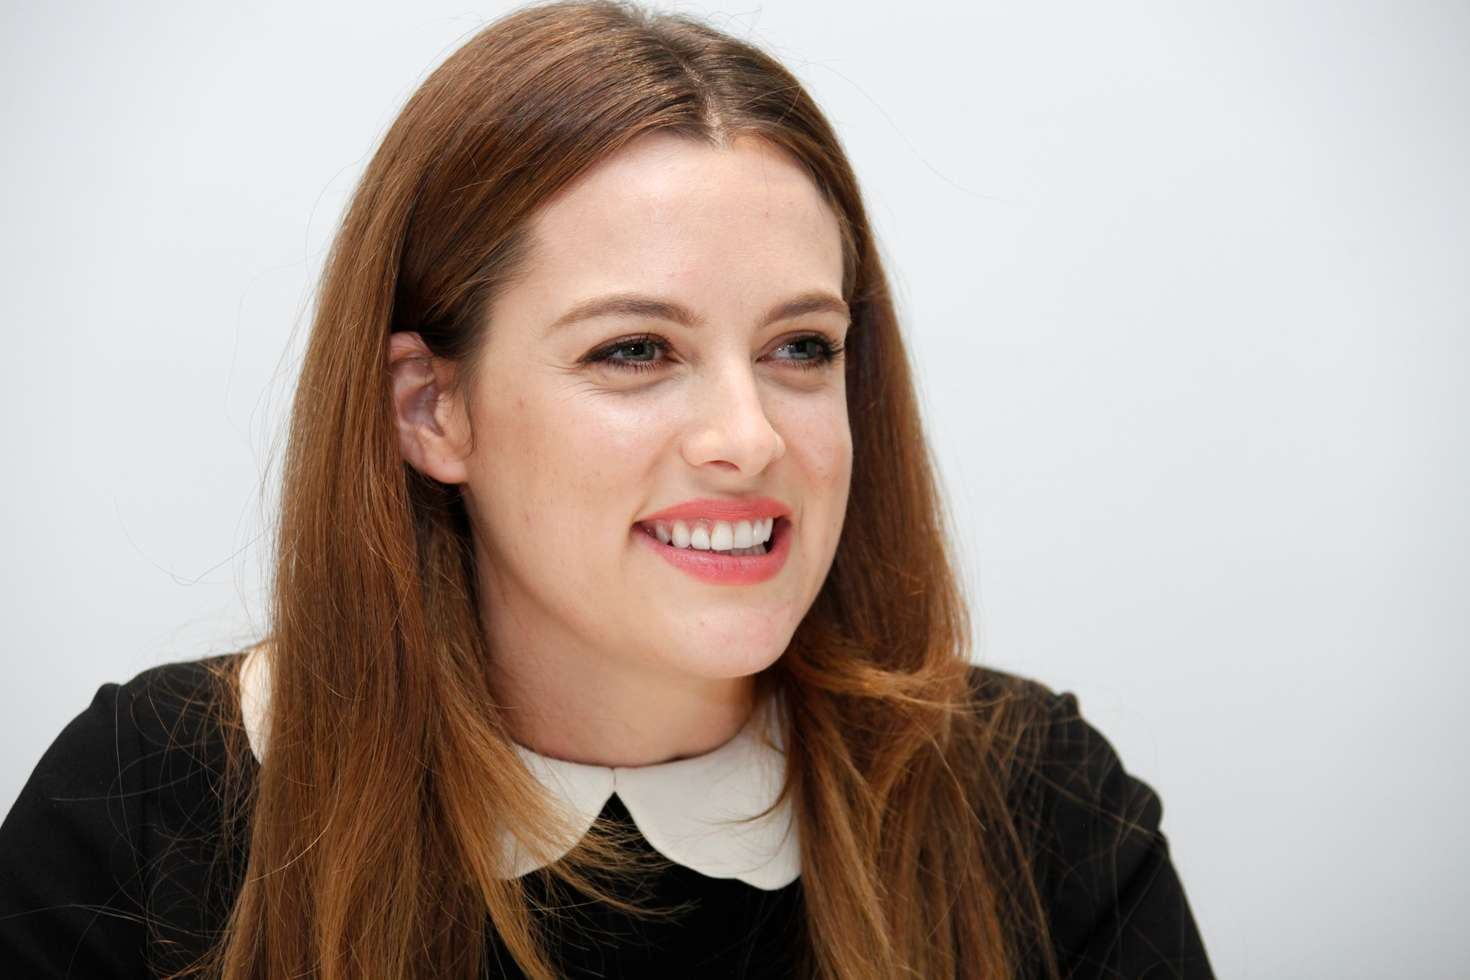 Riley keough celebrity movie archive